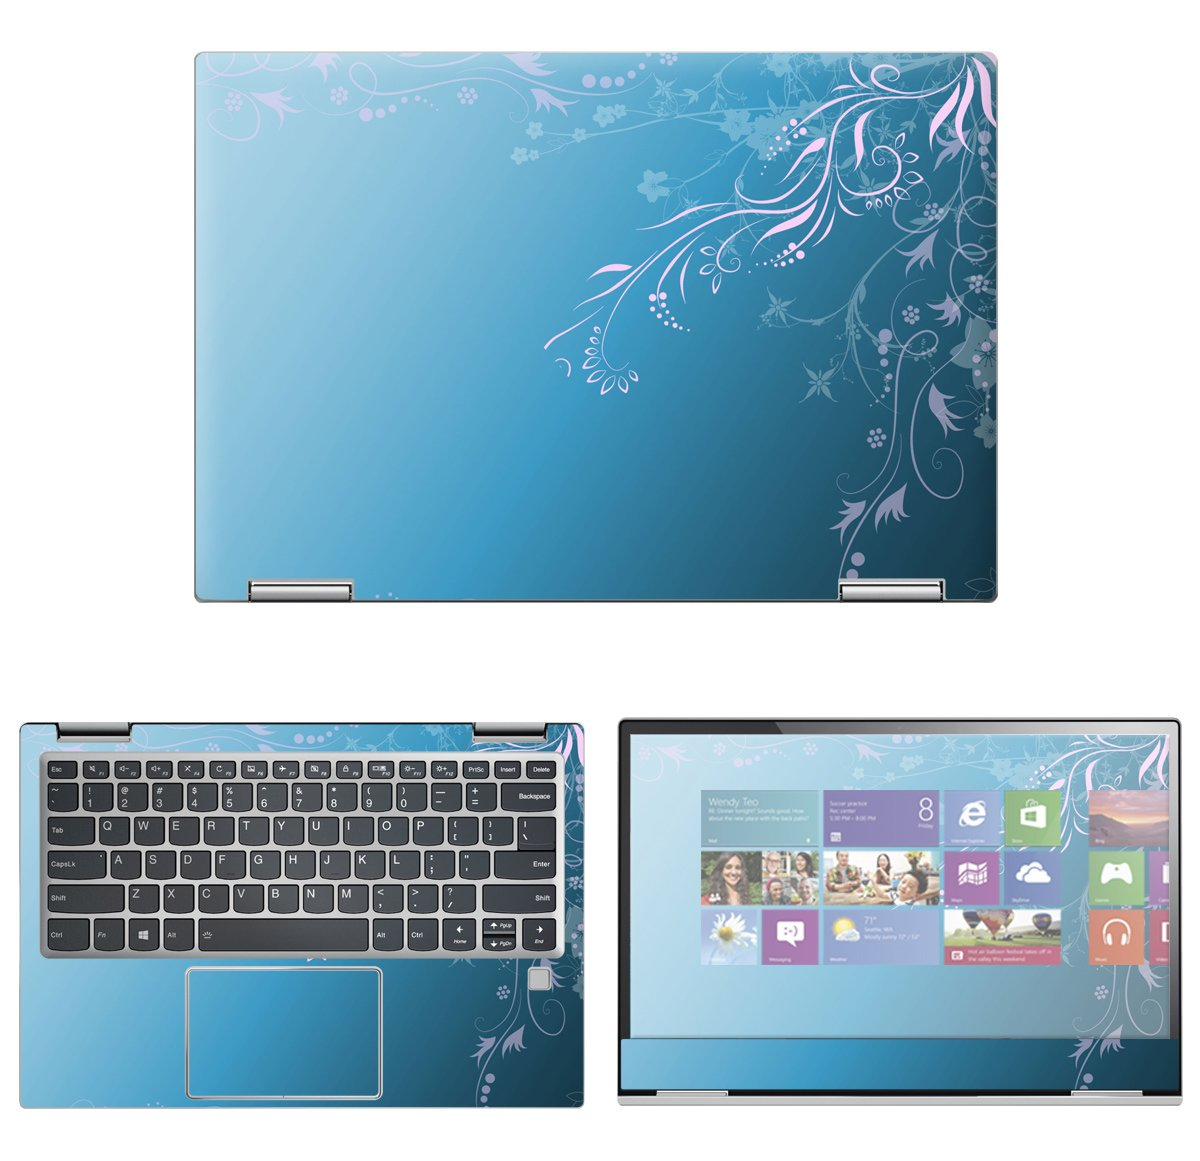 Decalrus - Protective Decal Skin Sticker for Lenovo Yoga 720 (13.3